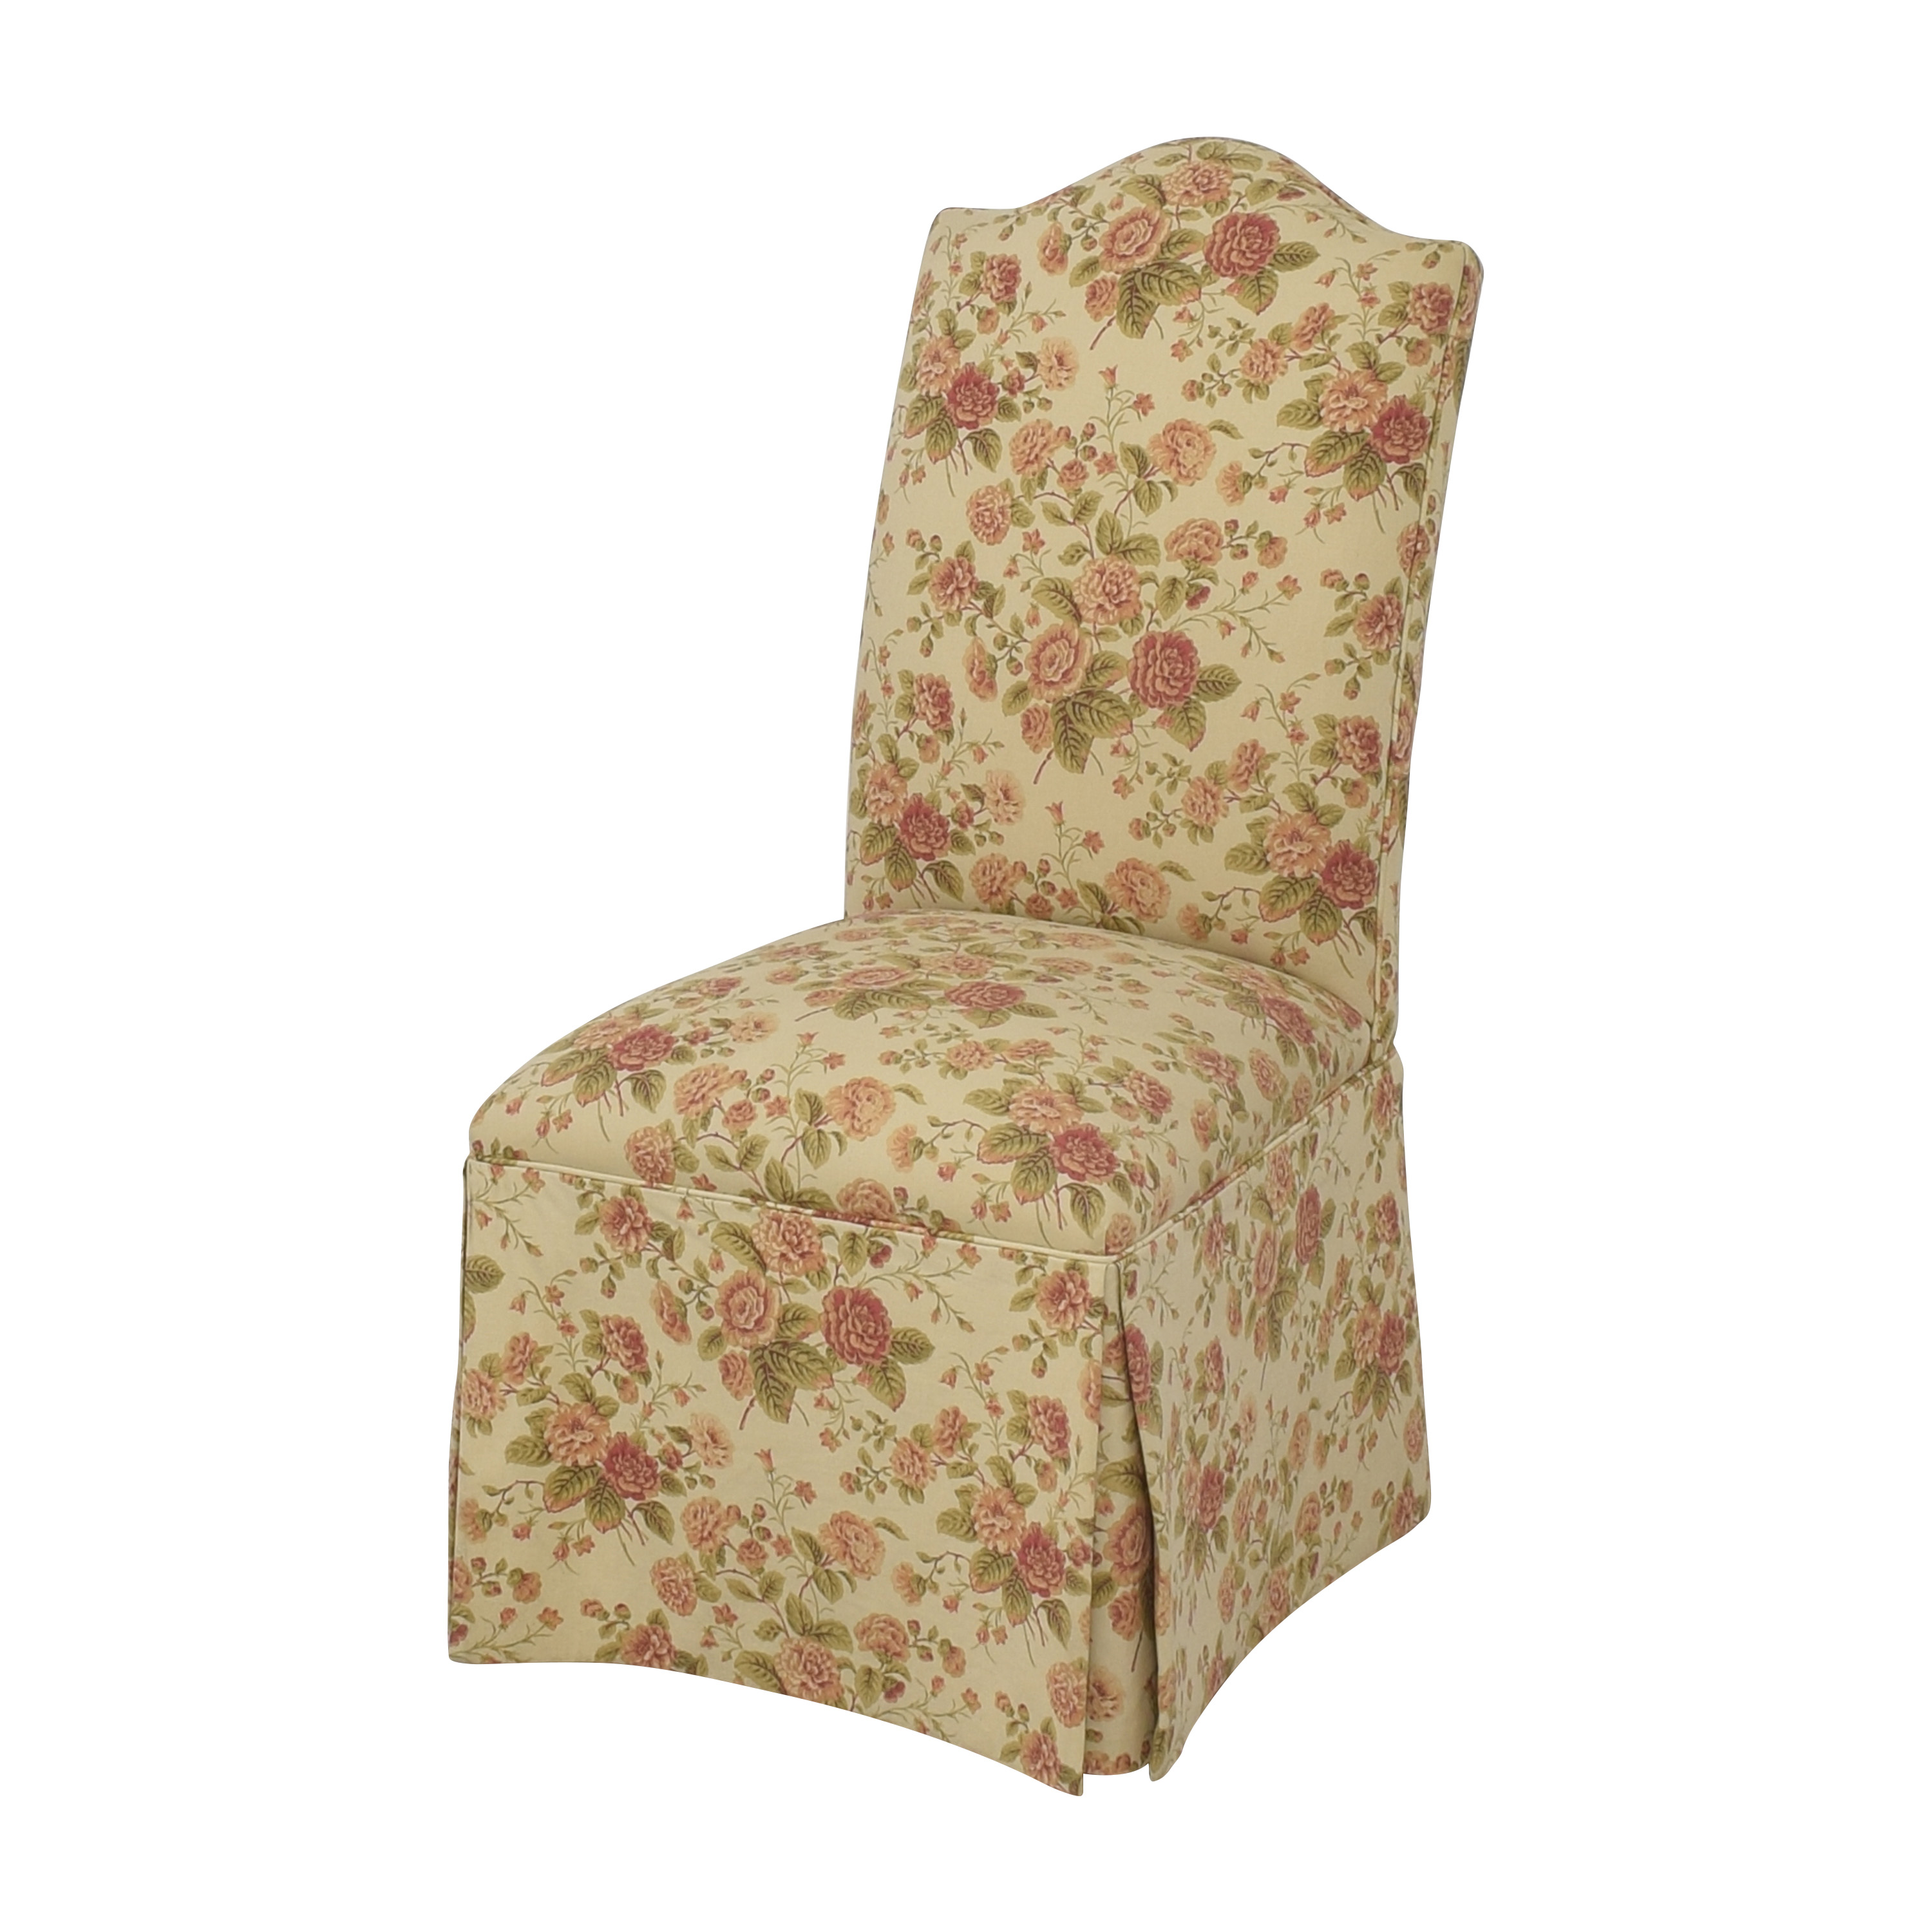 Ethan Allen Ethan Allen Olivia Dining Chairs multi